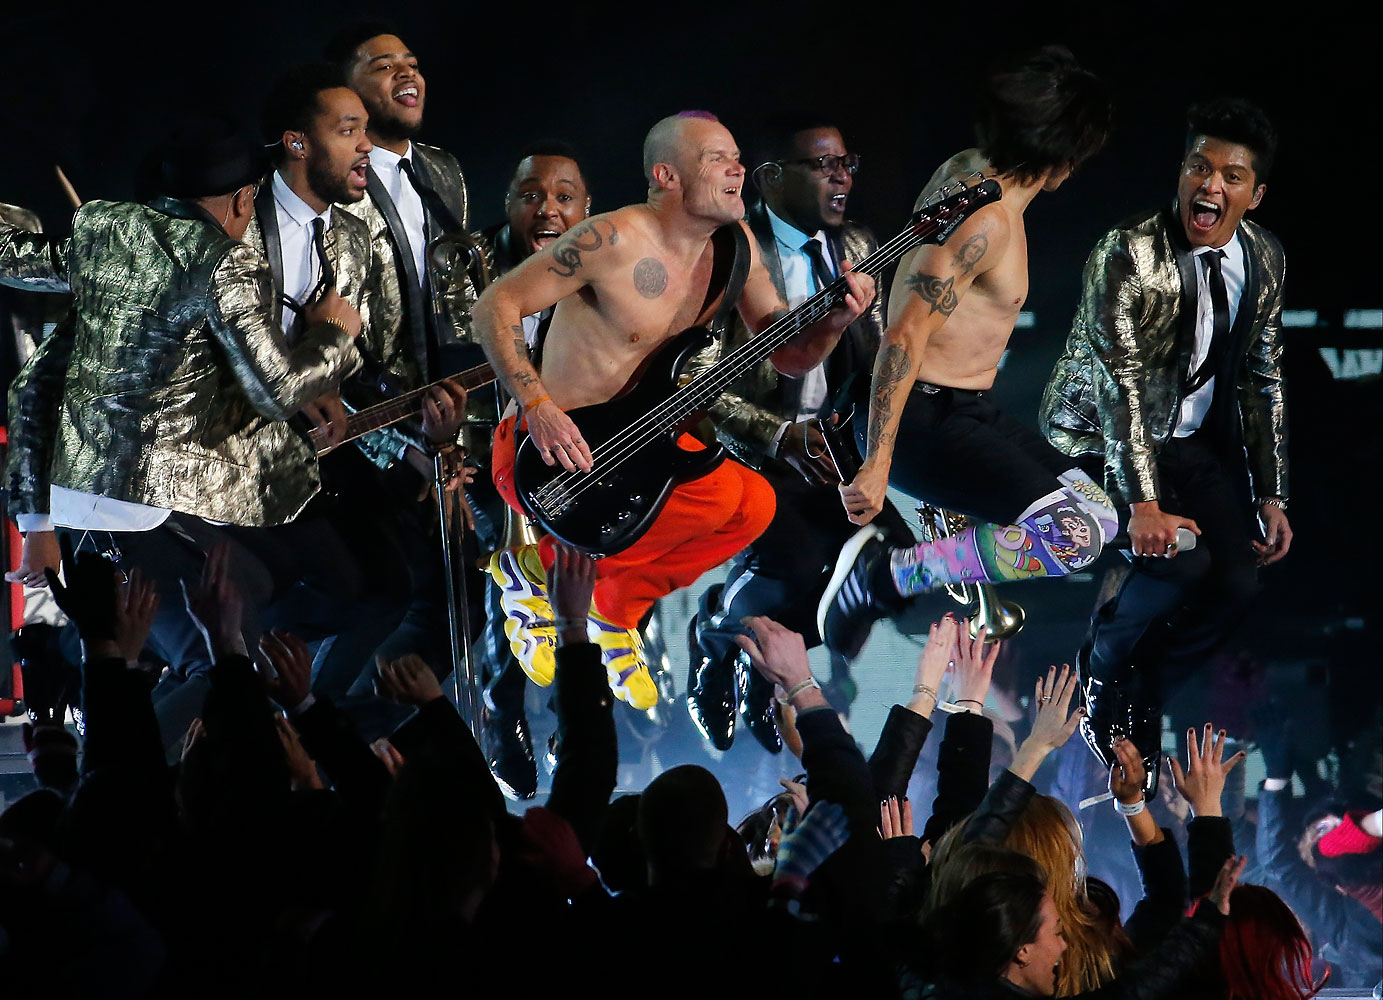 The Red Hot Chili Peppers and Bruno Mars perform during the halftime show of the NFL Super Bowl XLVIII football game between the Seattle Seahawks and the Denver Broncos Sunday, Feb. 2, 2014, in East Rutherford, N.J.